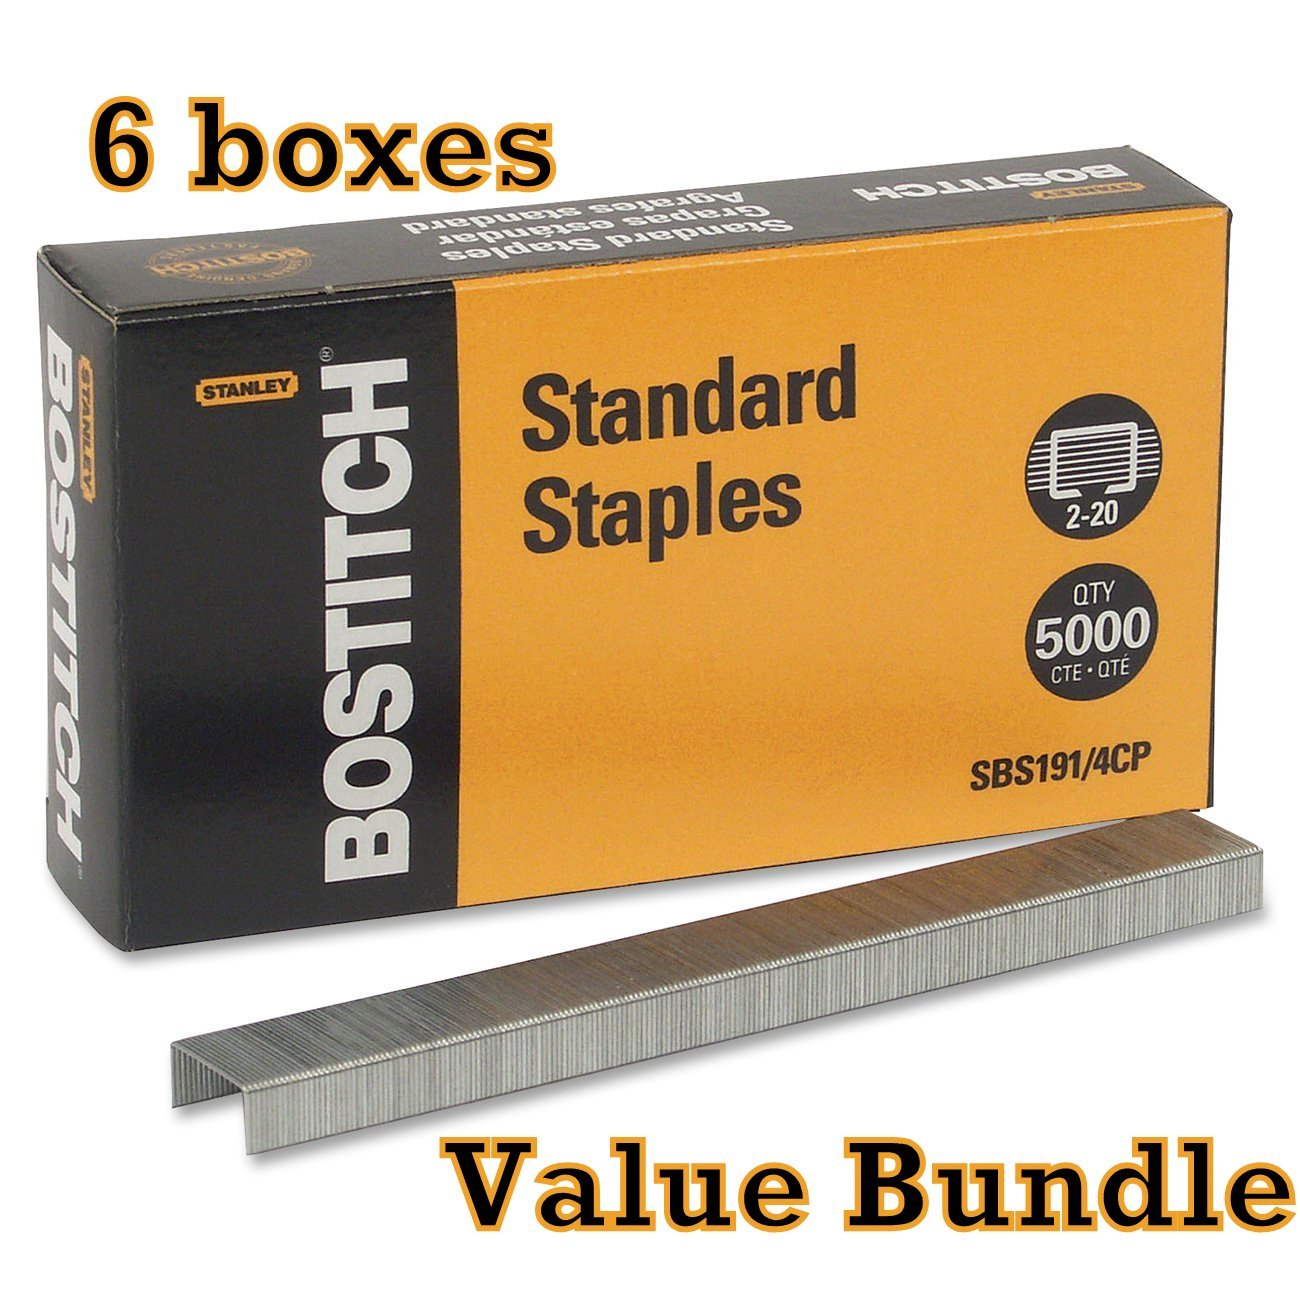 Value Pack of 6 Stanley Bostitch Premium Standard Staples, 1/4 Inch Silver, 5,000 per box (SBS191/4CP) by Business & School Supply